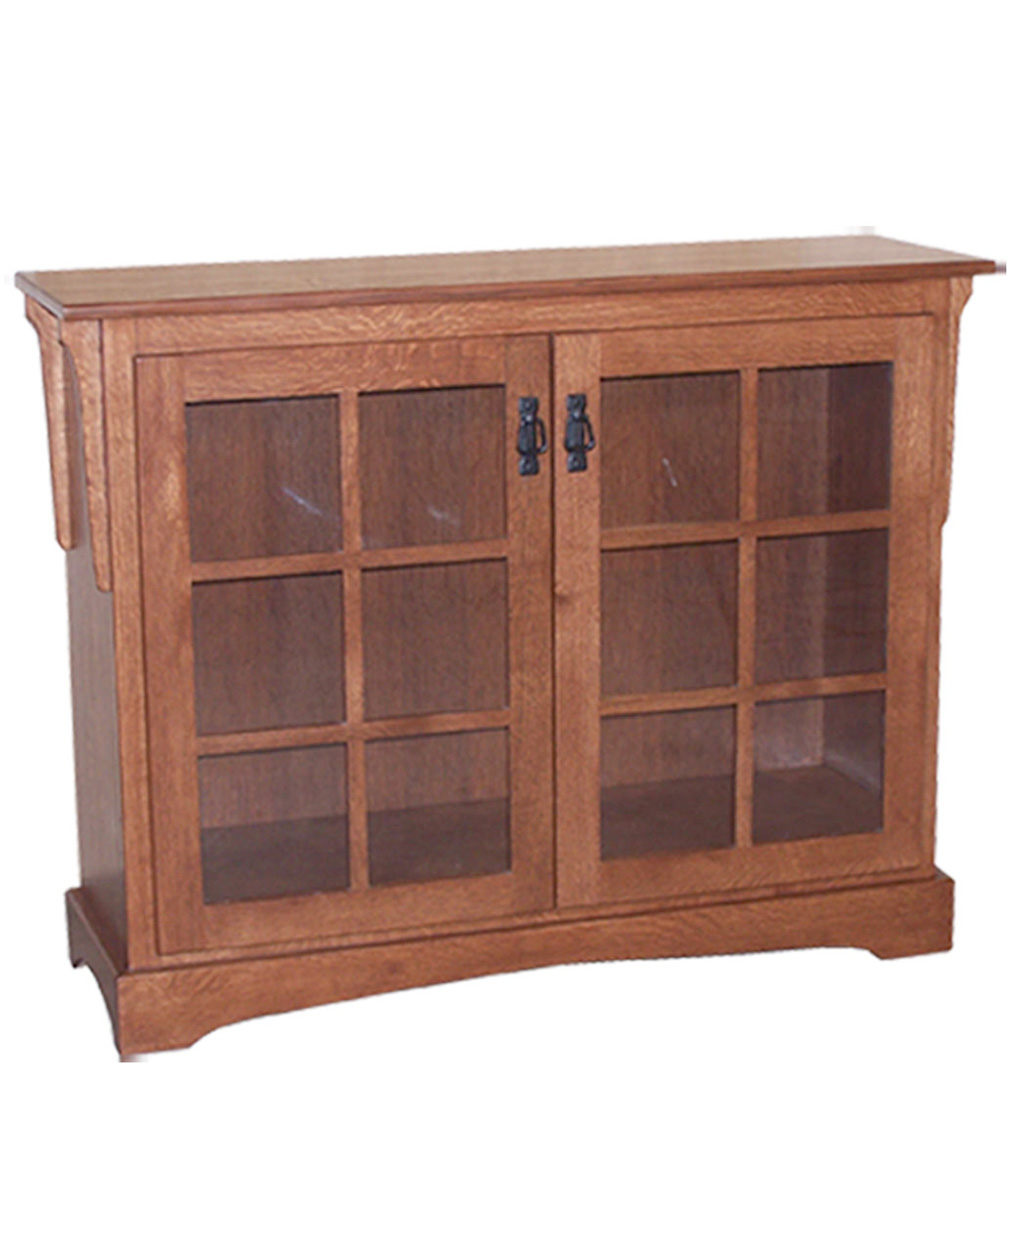 small mission bookcase with doors amish direct furniture. Black Bedroom Furniture Sets. Home Design Ideas